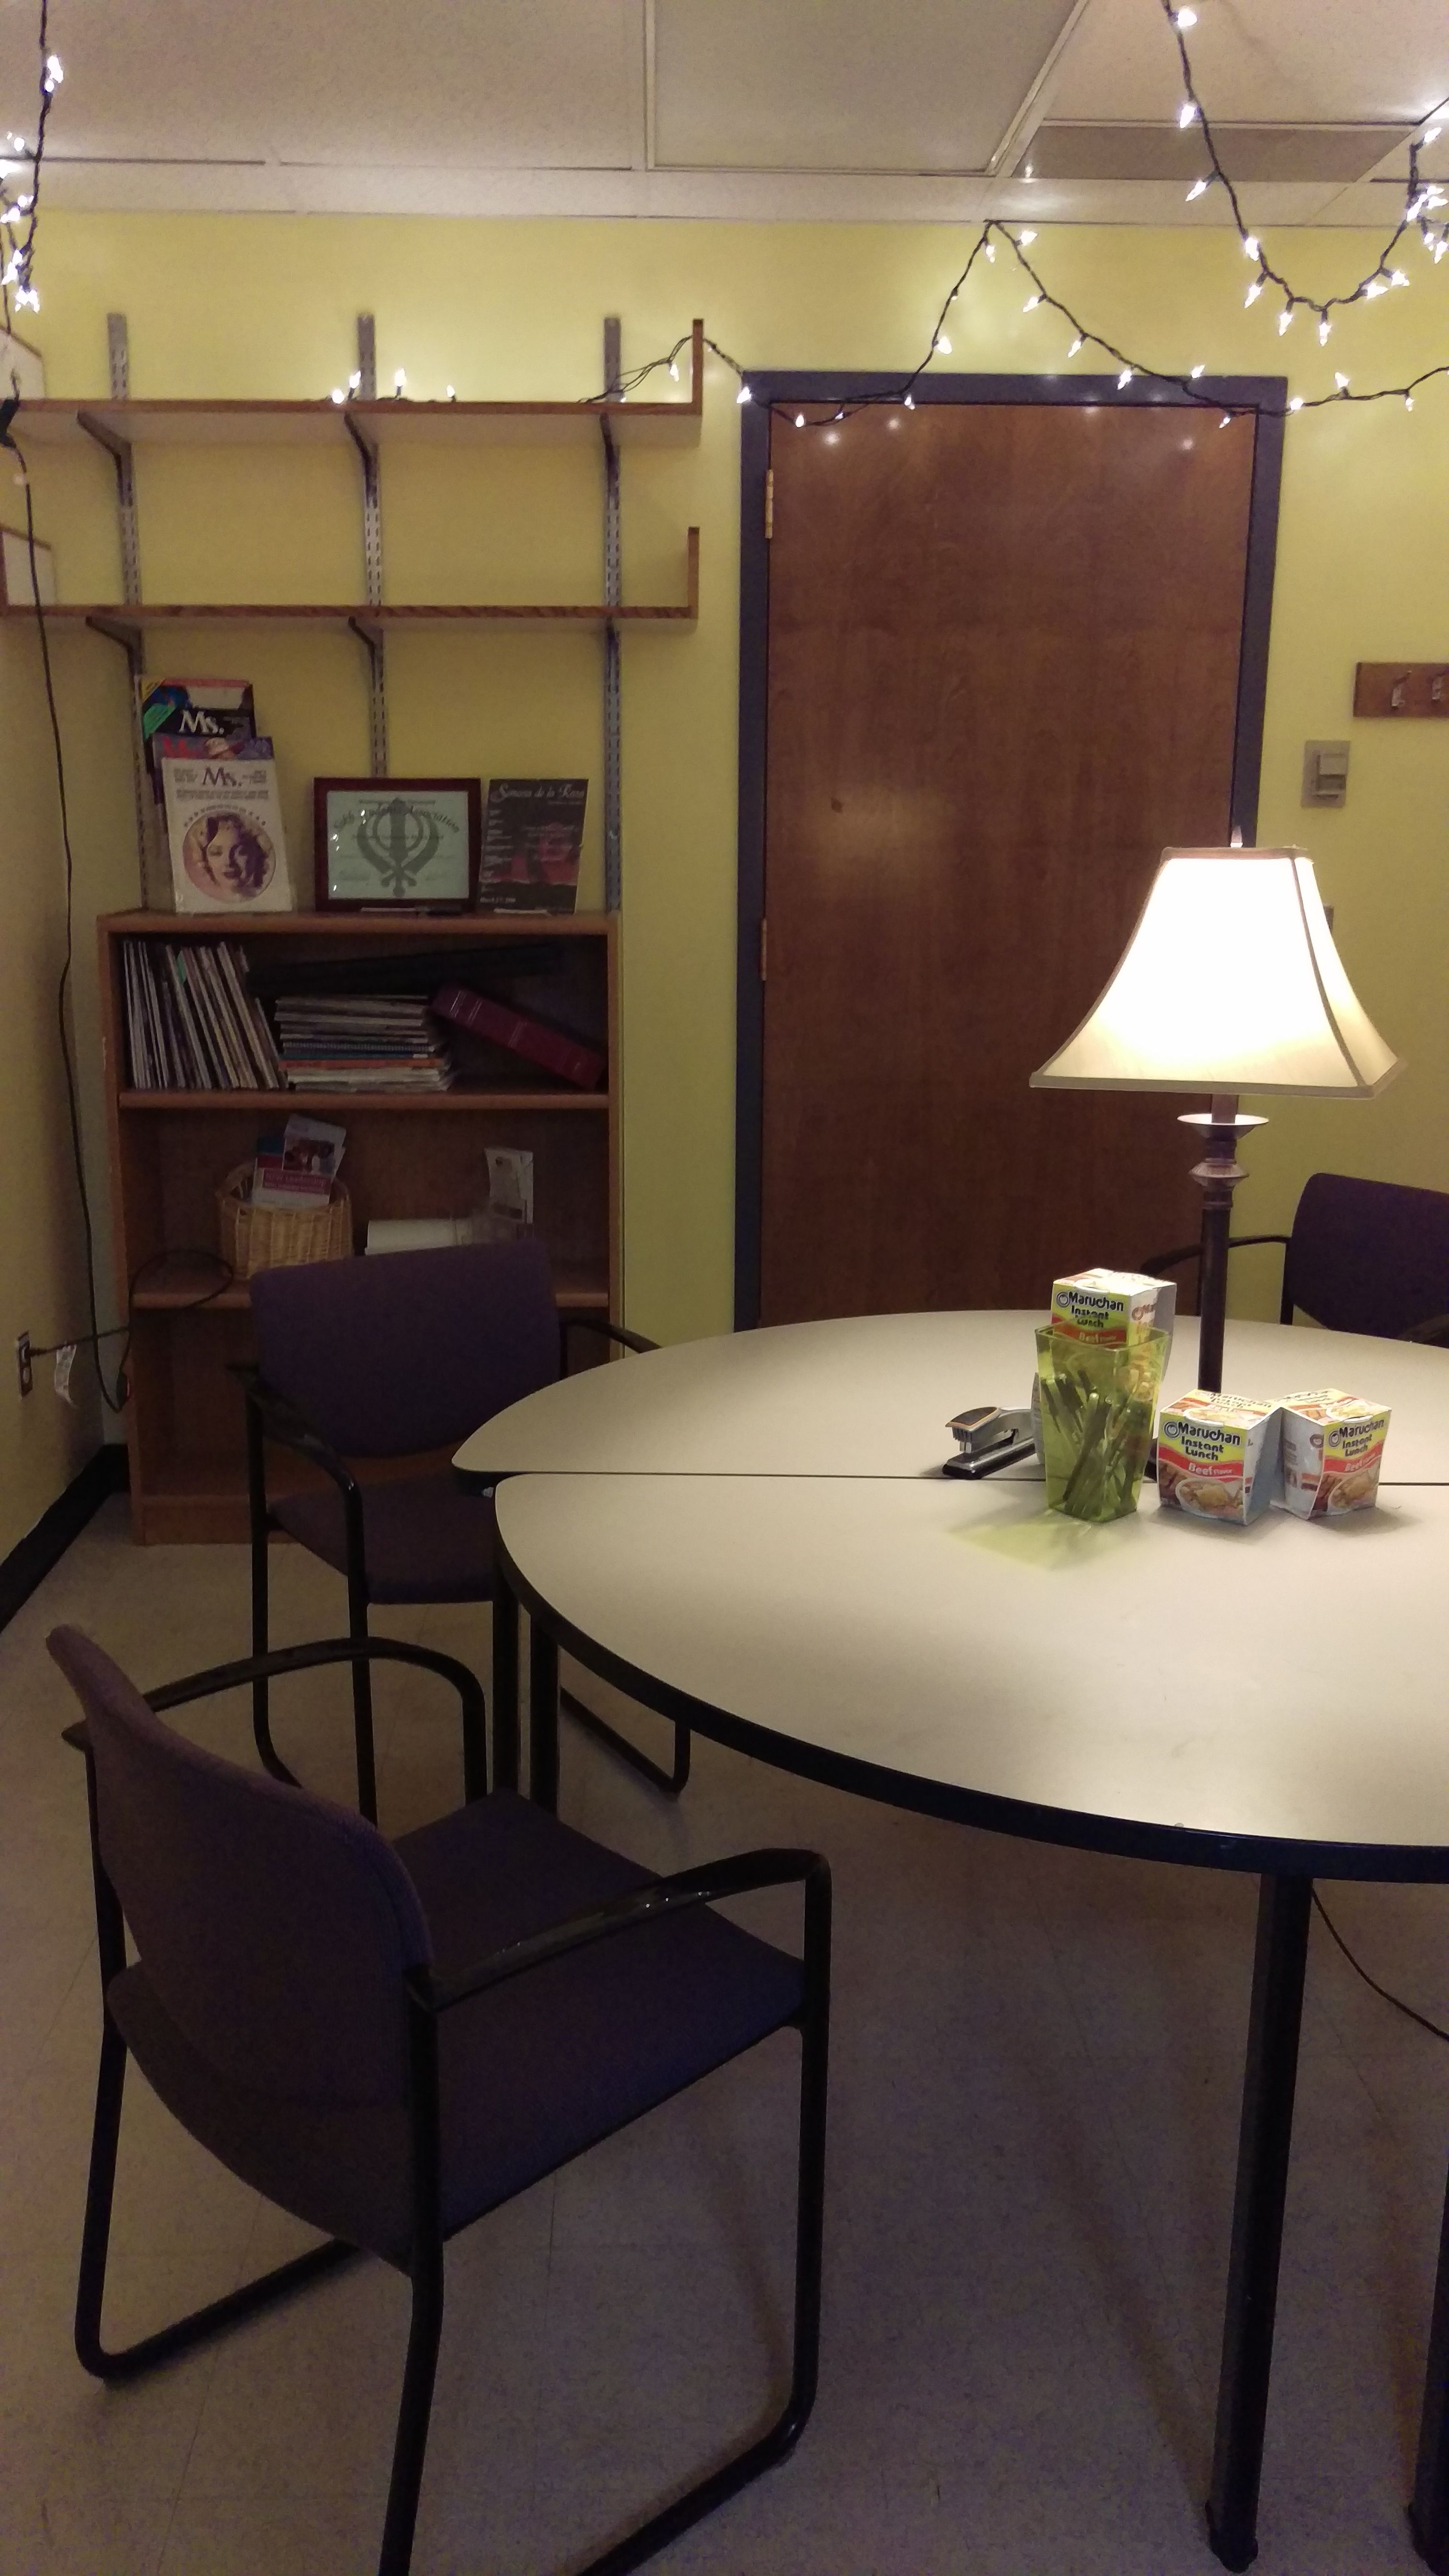 room with table and chairs